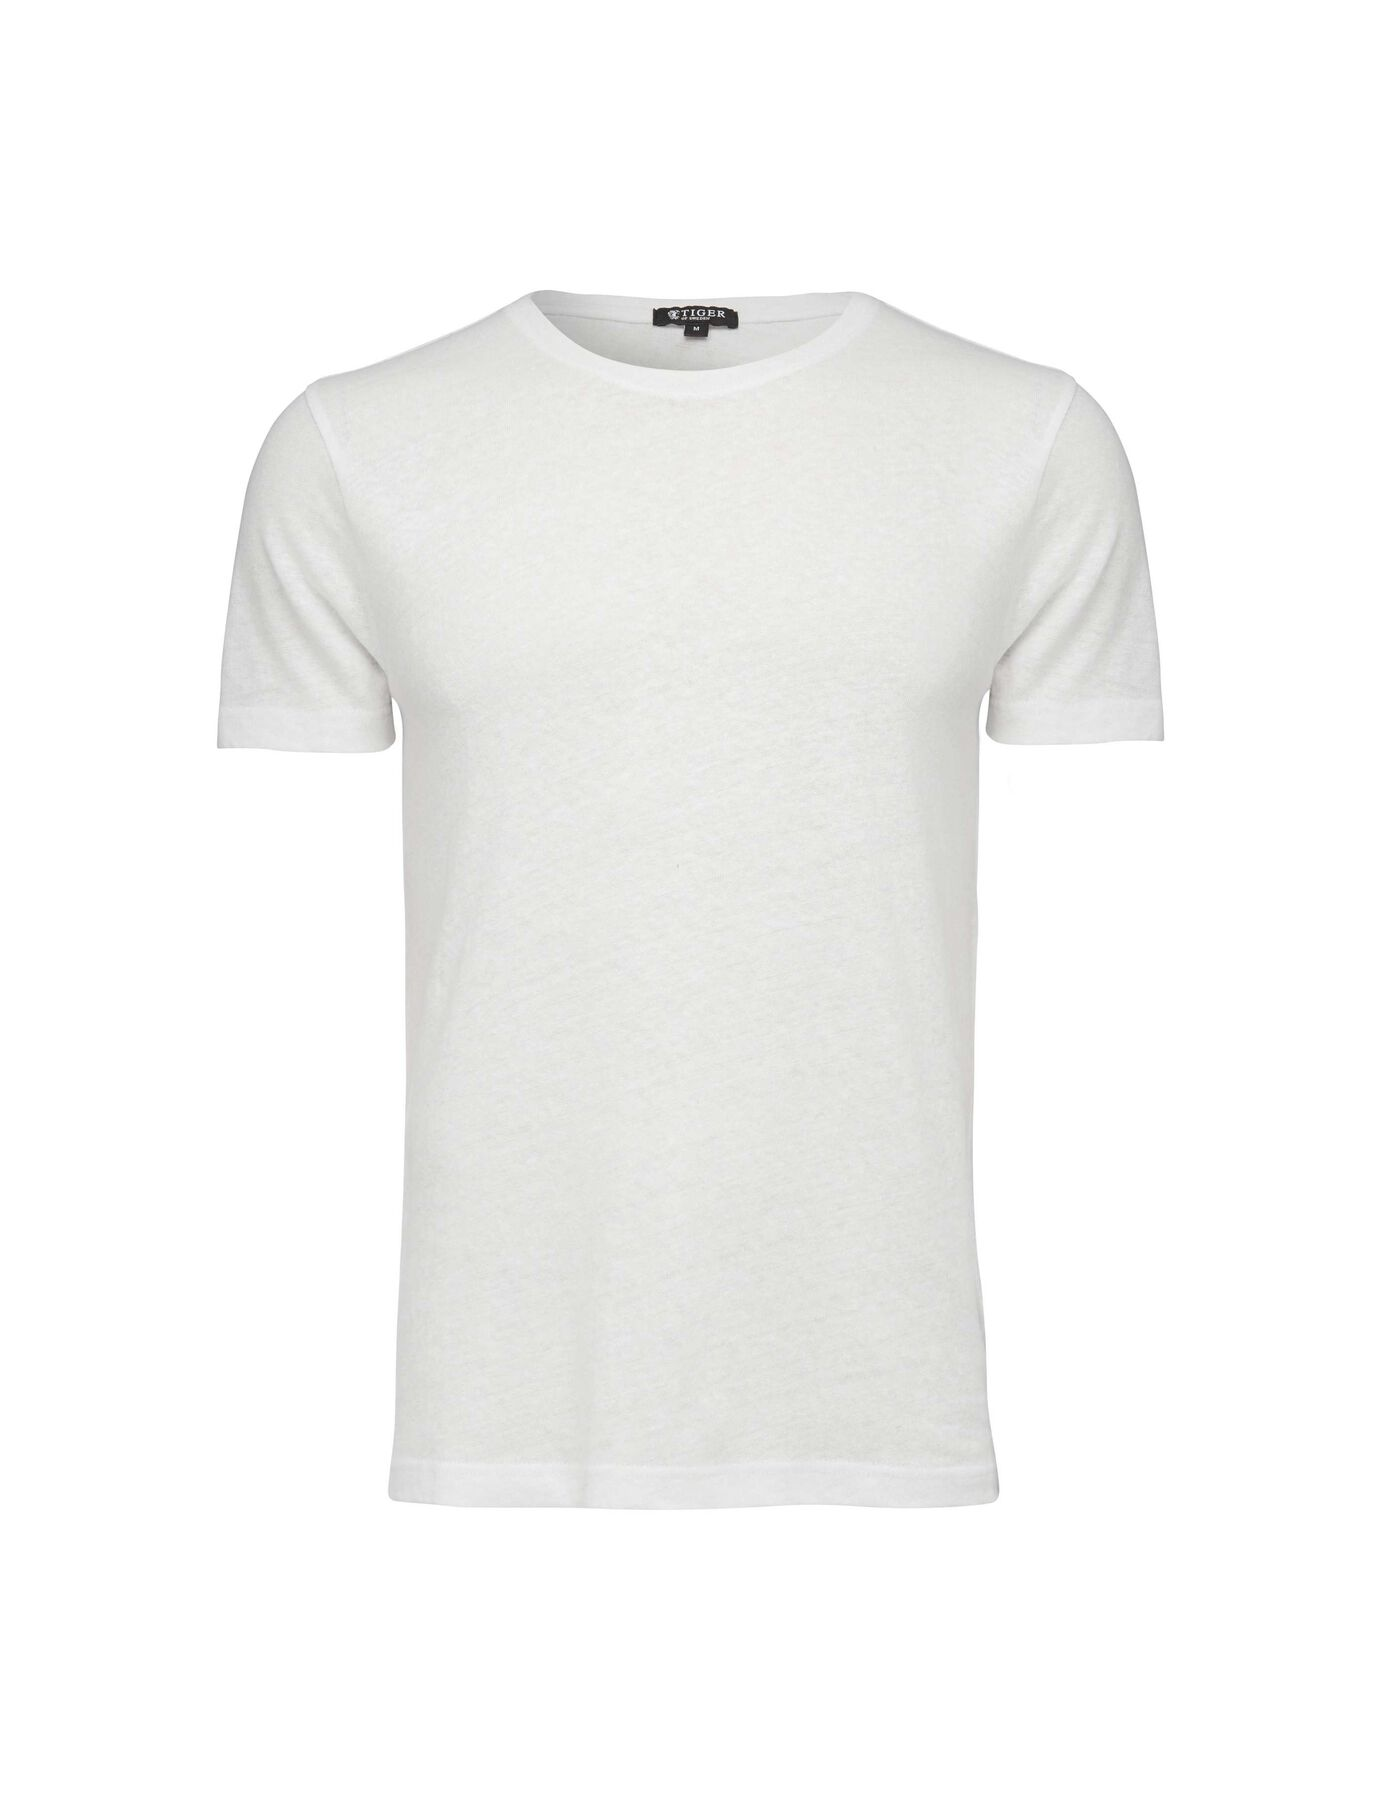 Legacie t-shirt in White from Tiger of Sweden